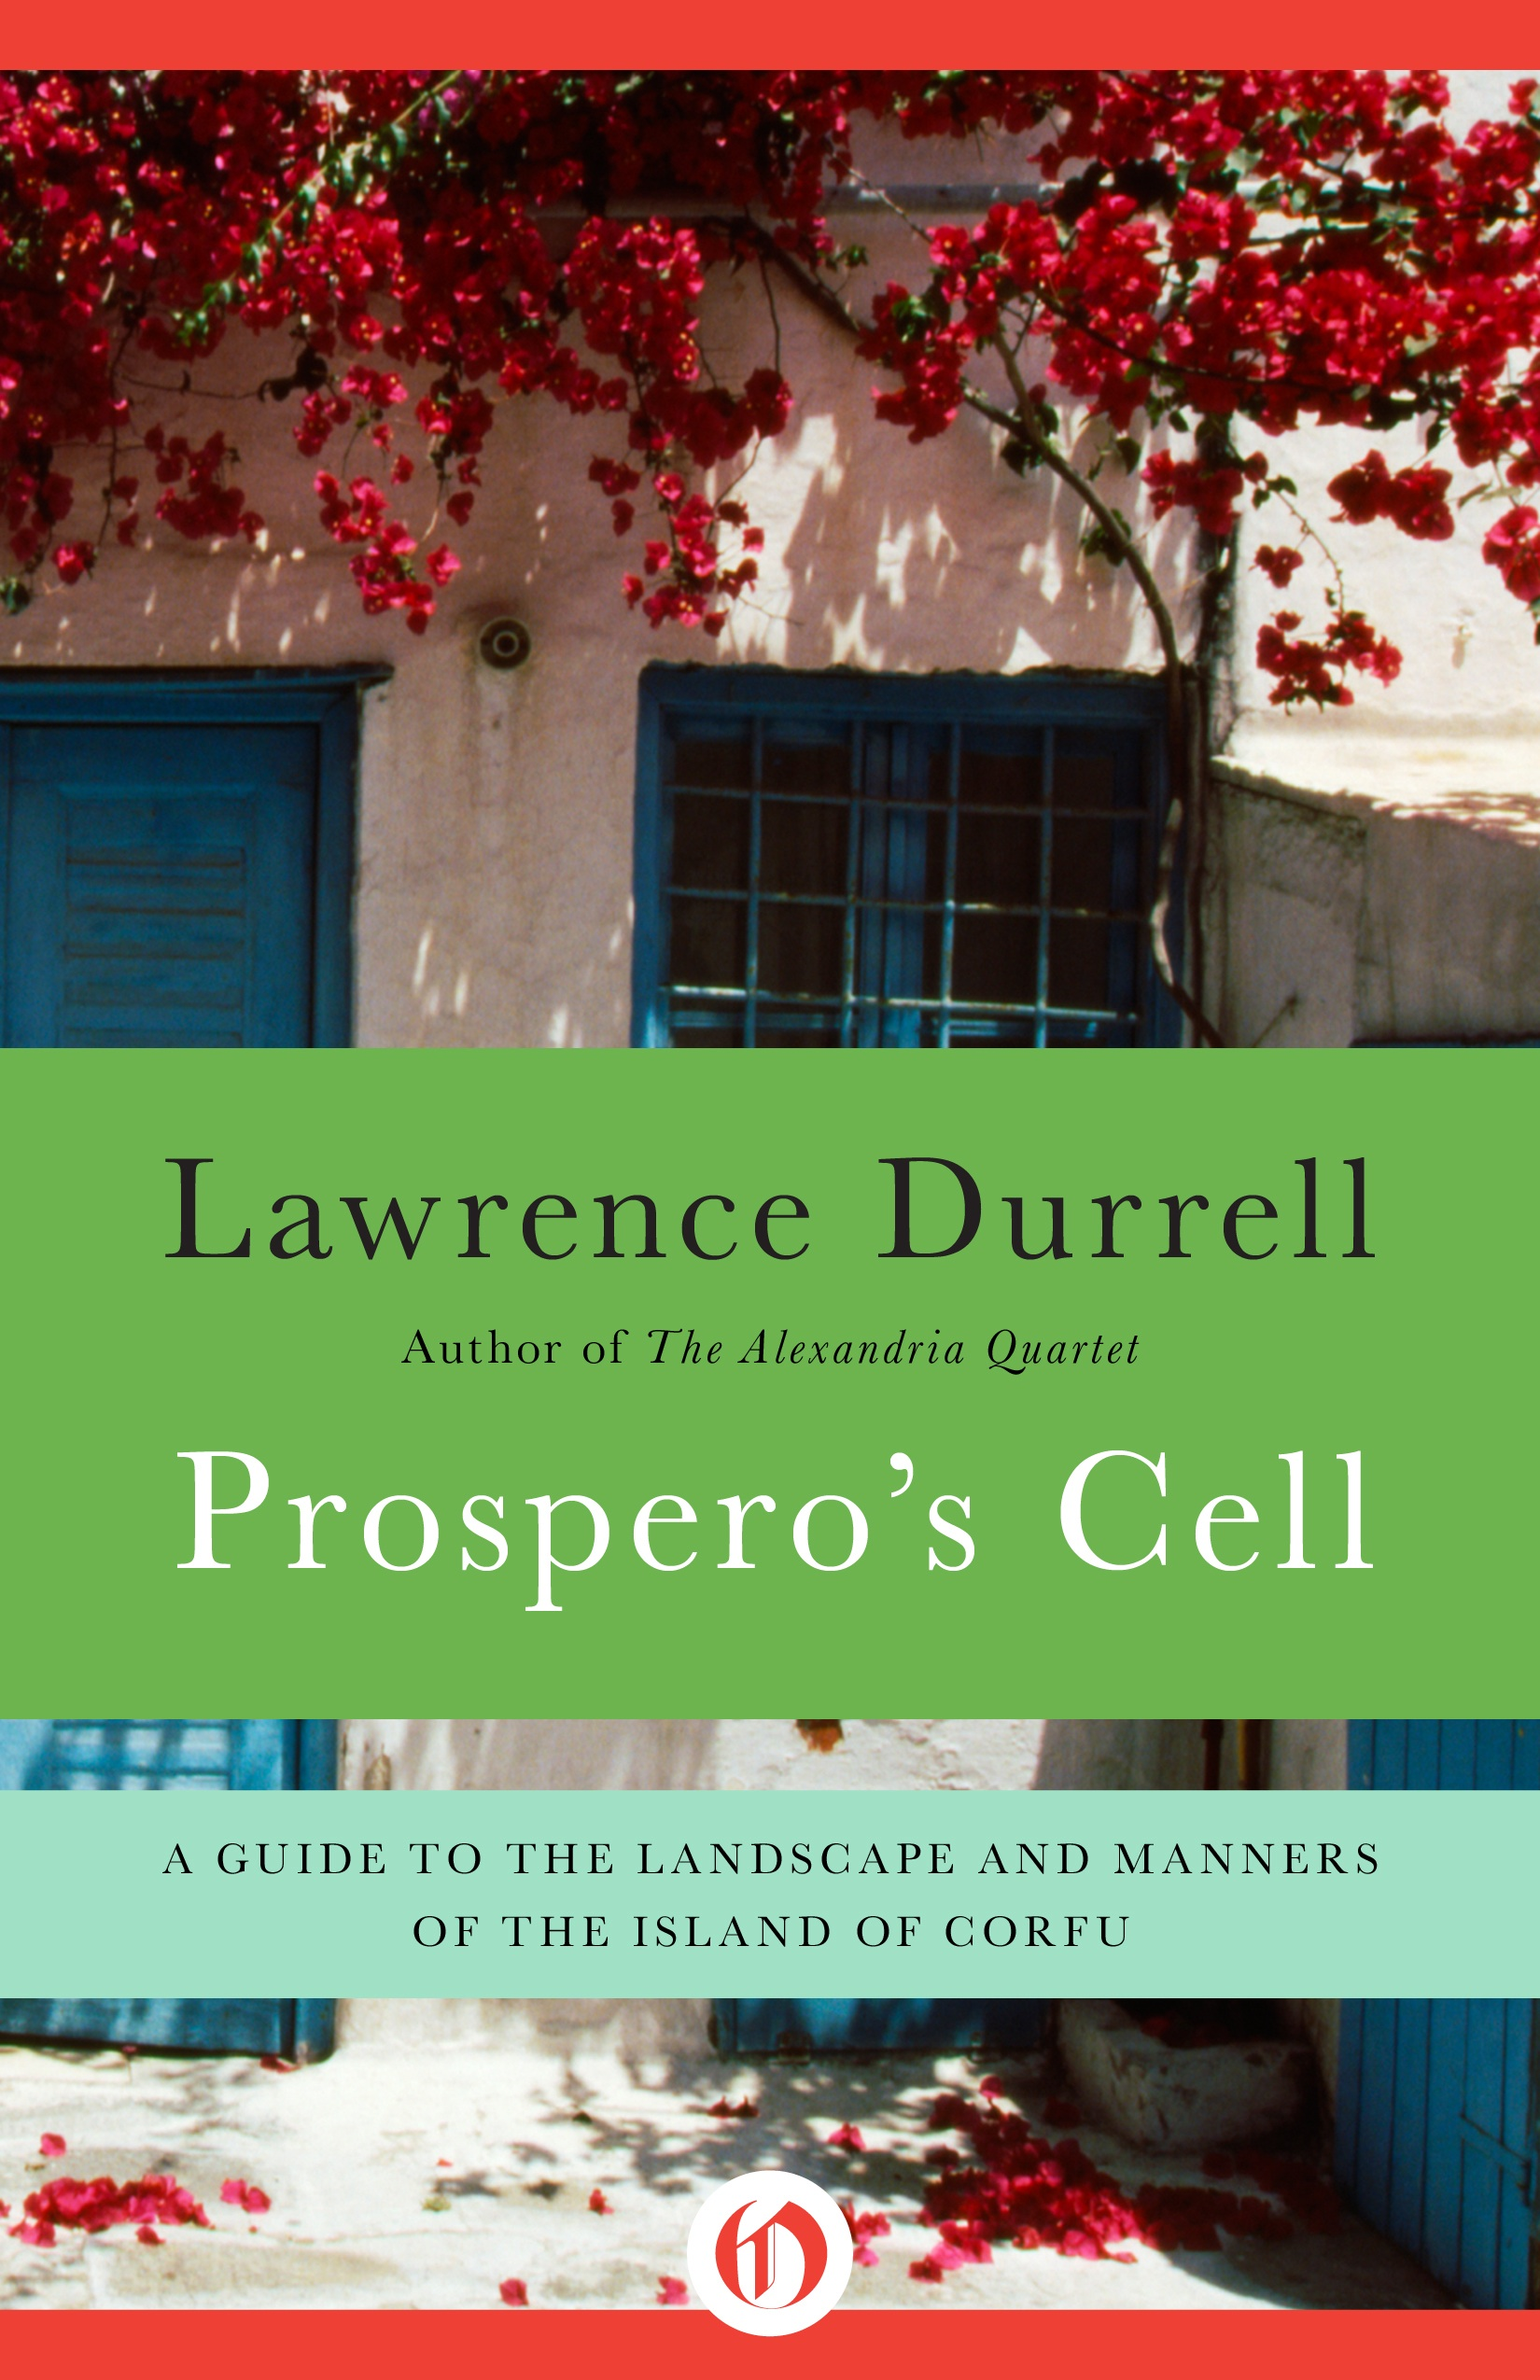 Prospero's Cell: A Guide to the Landscape and Manners of the Island of Corfu By: Lawrence Durrell